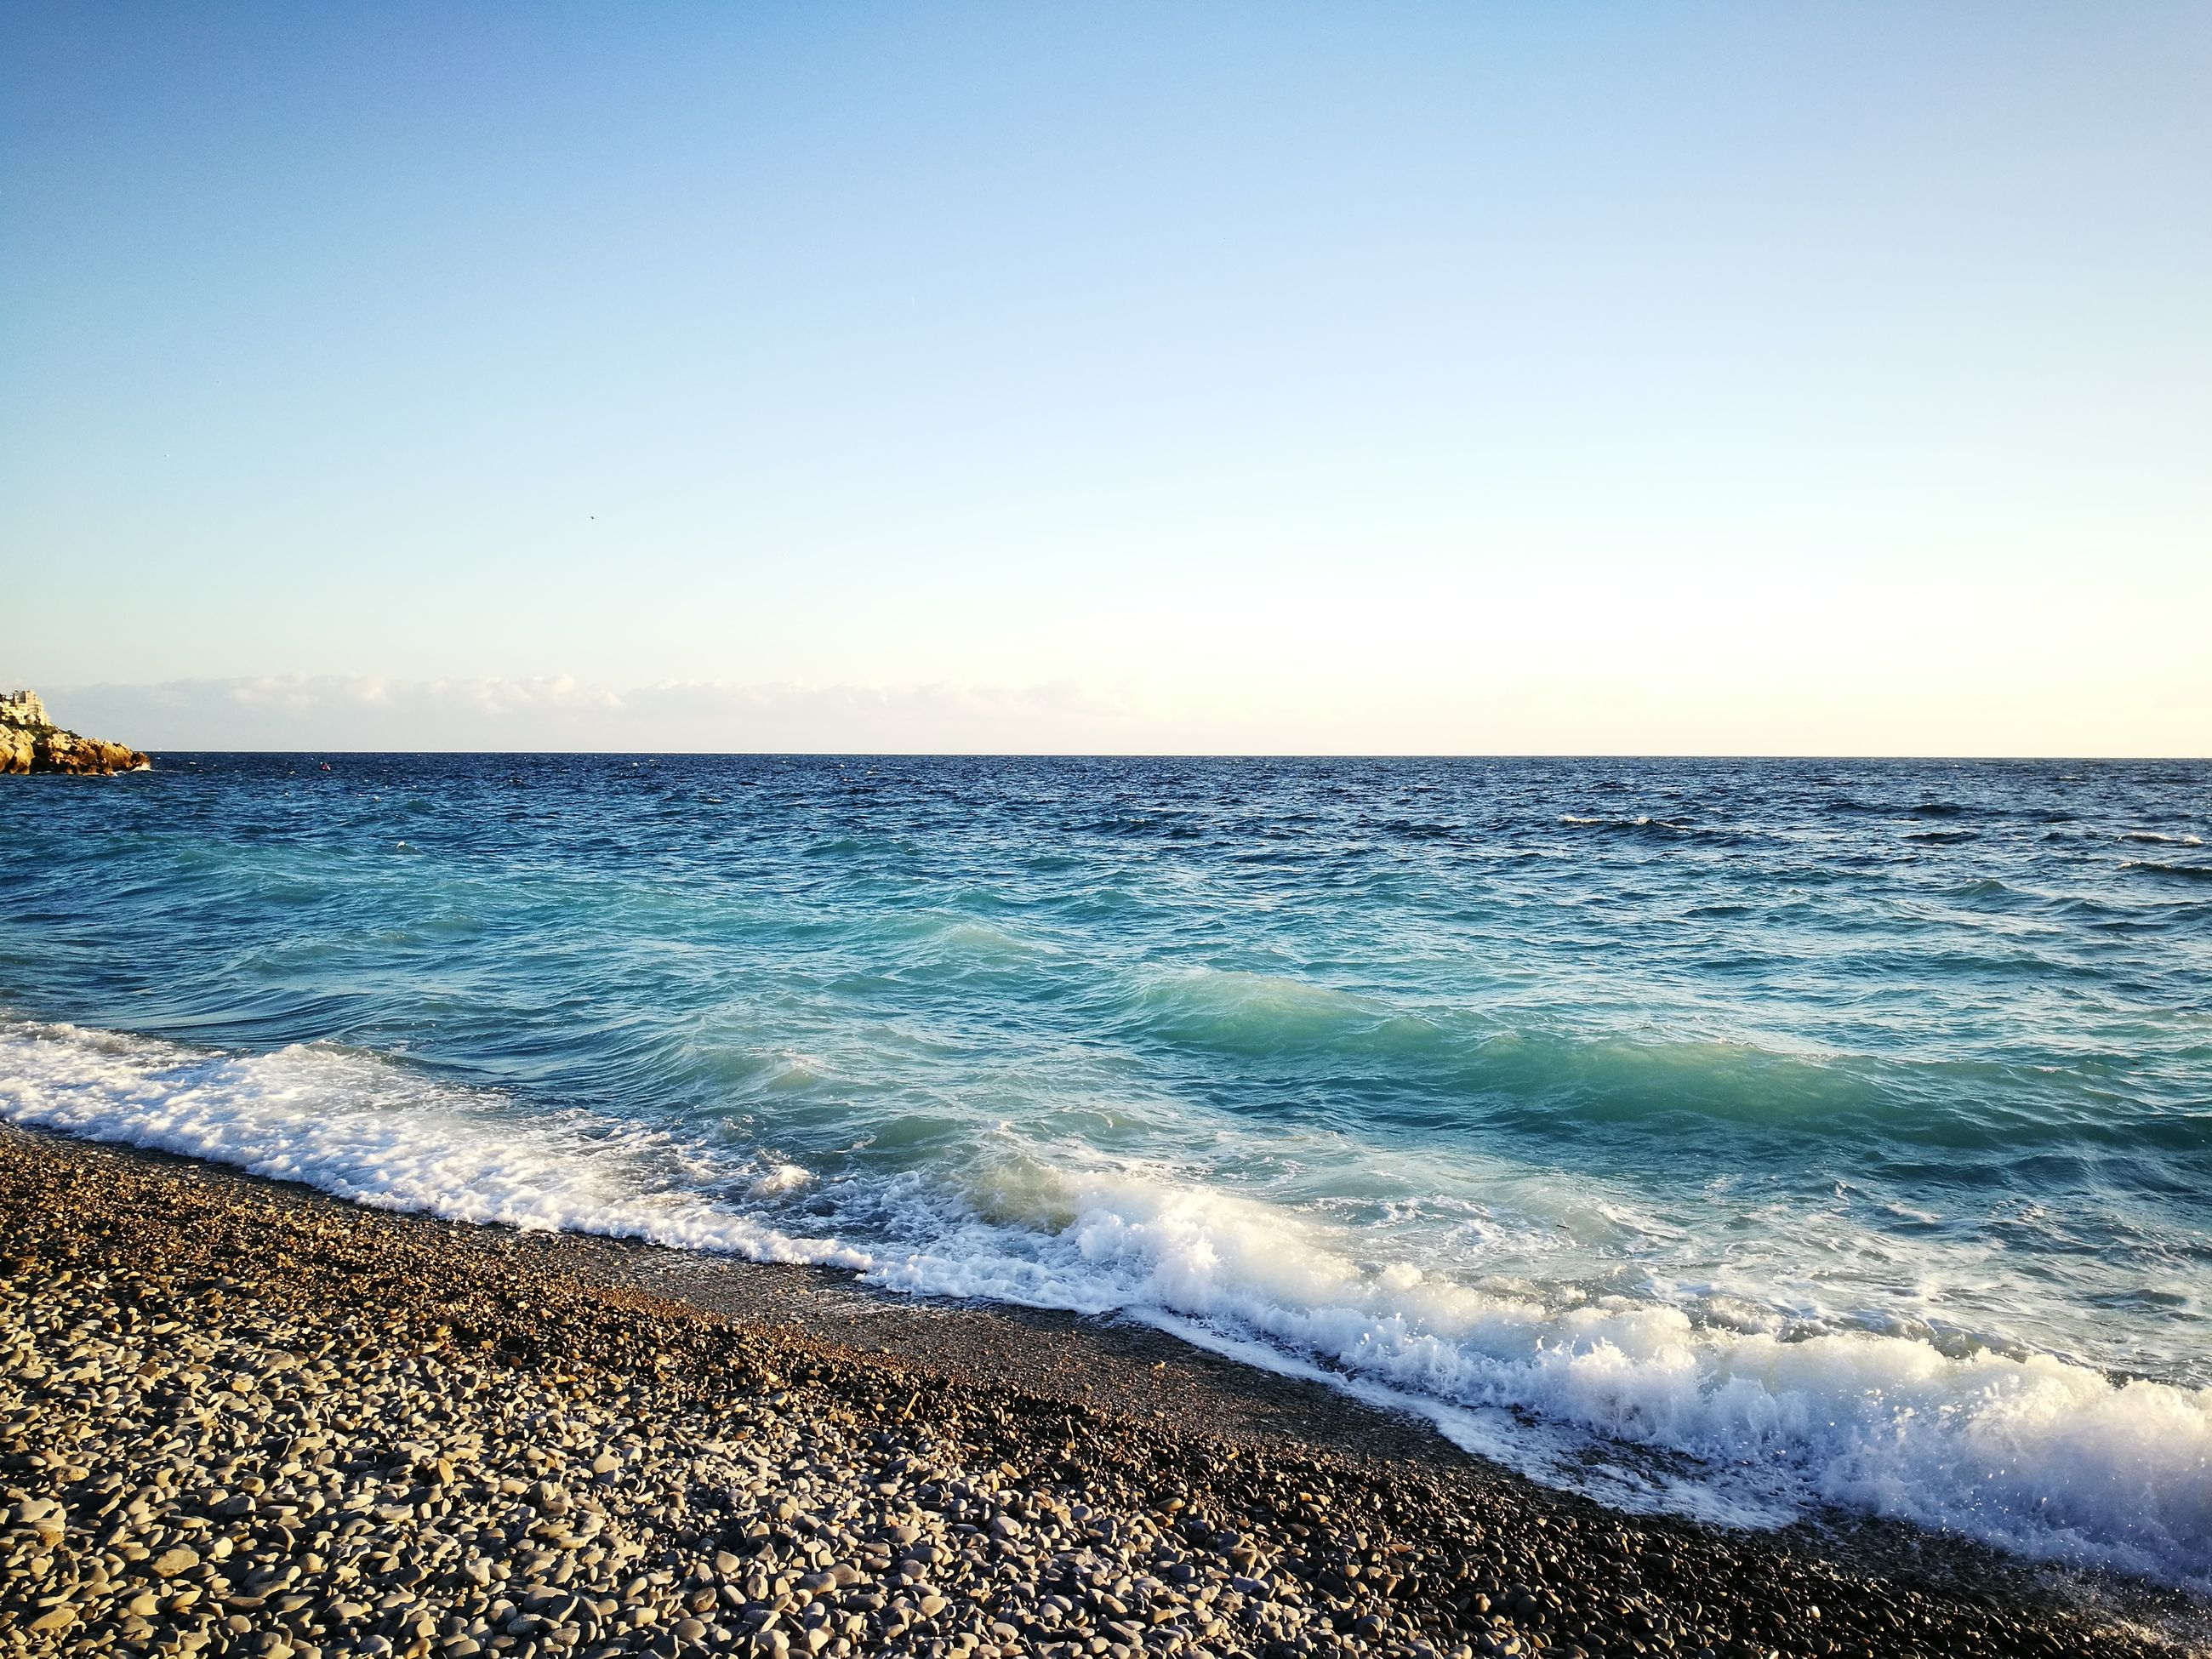 sea, water, nature, scenics, beauty in nature, horizon over water, clear sky, blue, tranquil scene, tranquility, no people, sky, outdoors, day, beach